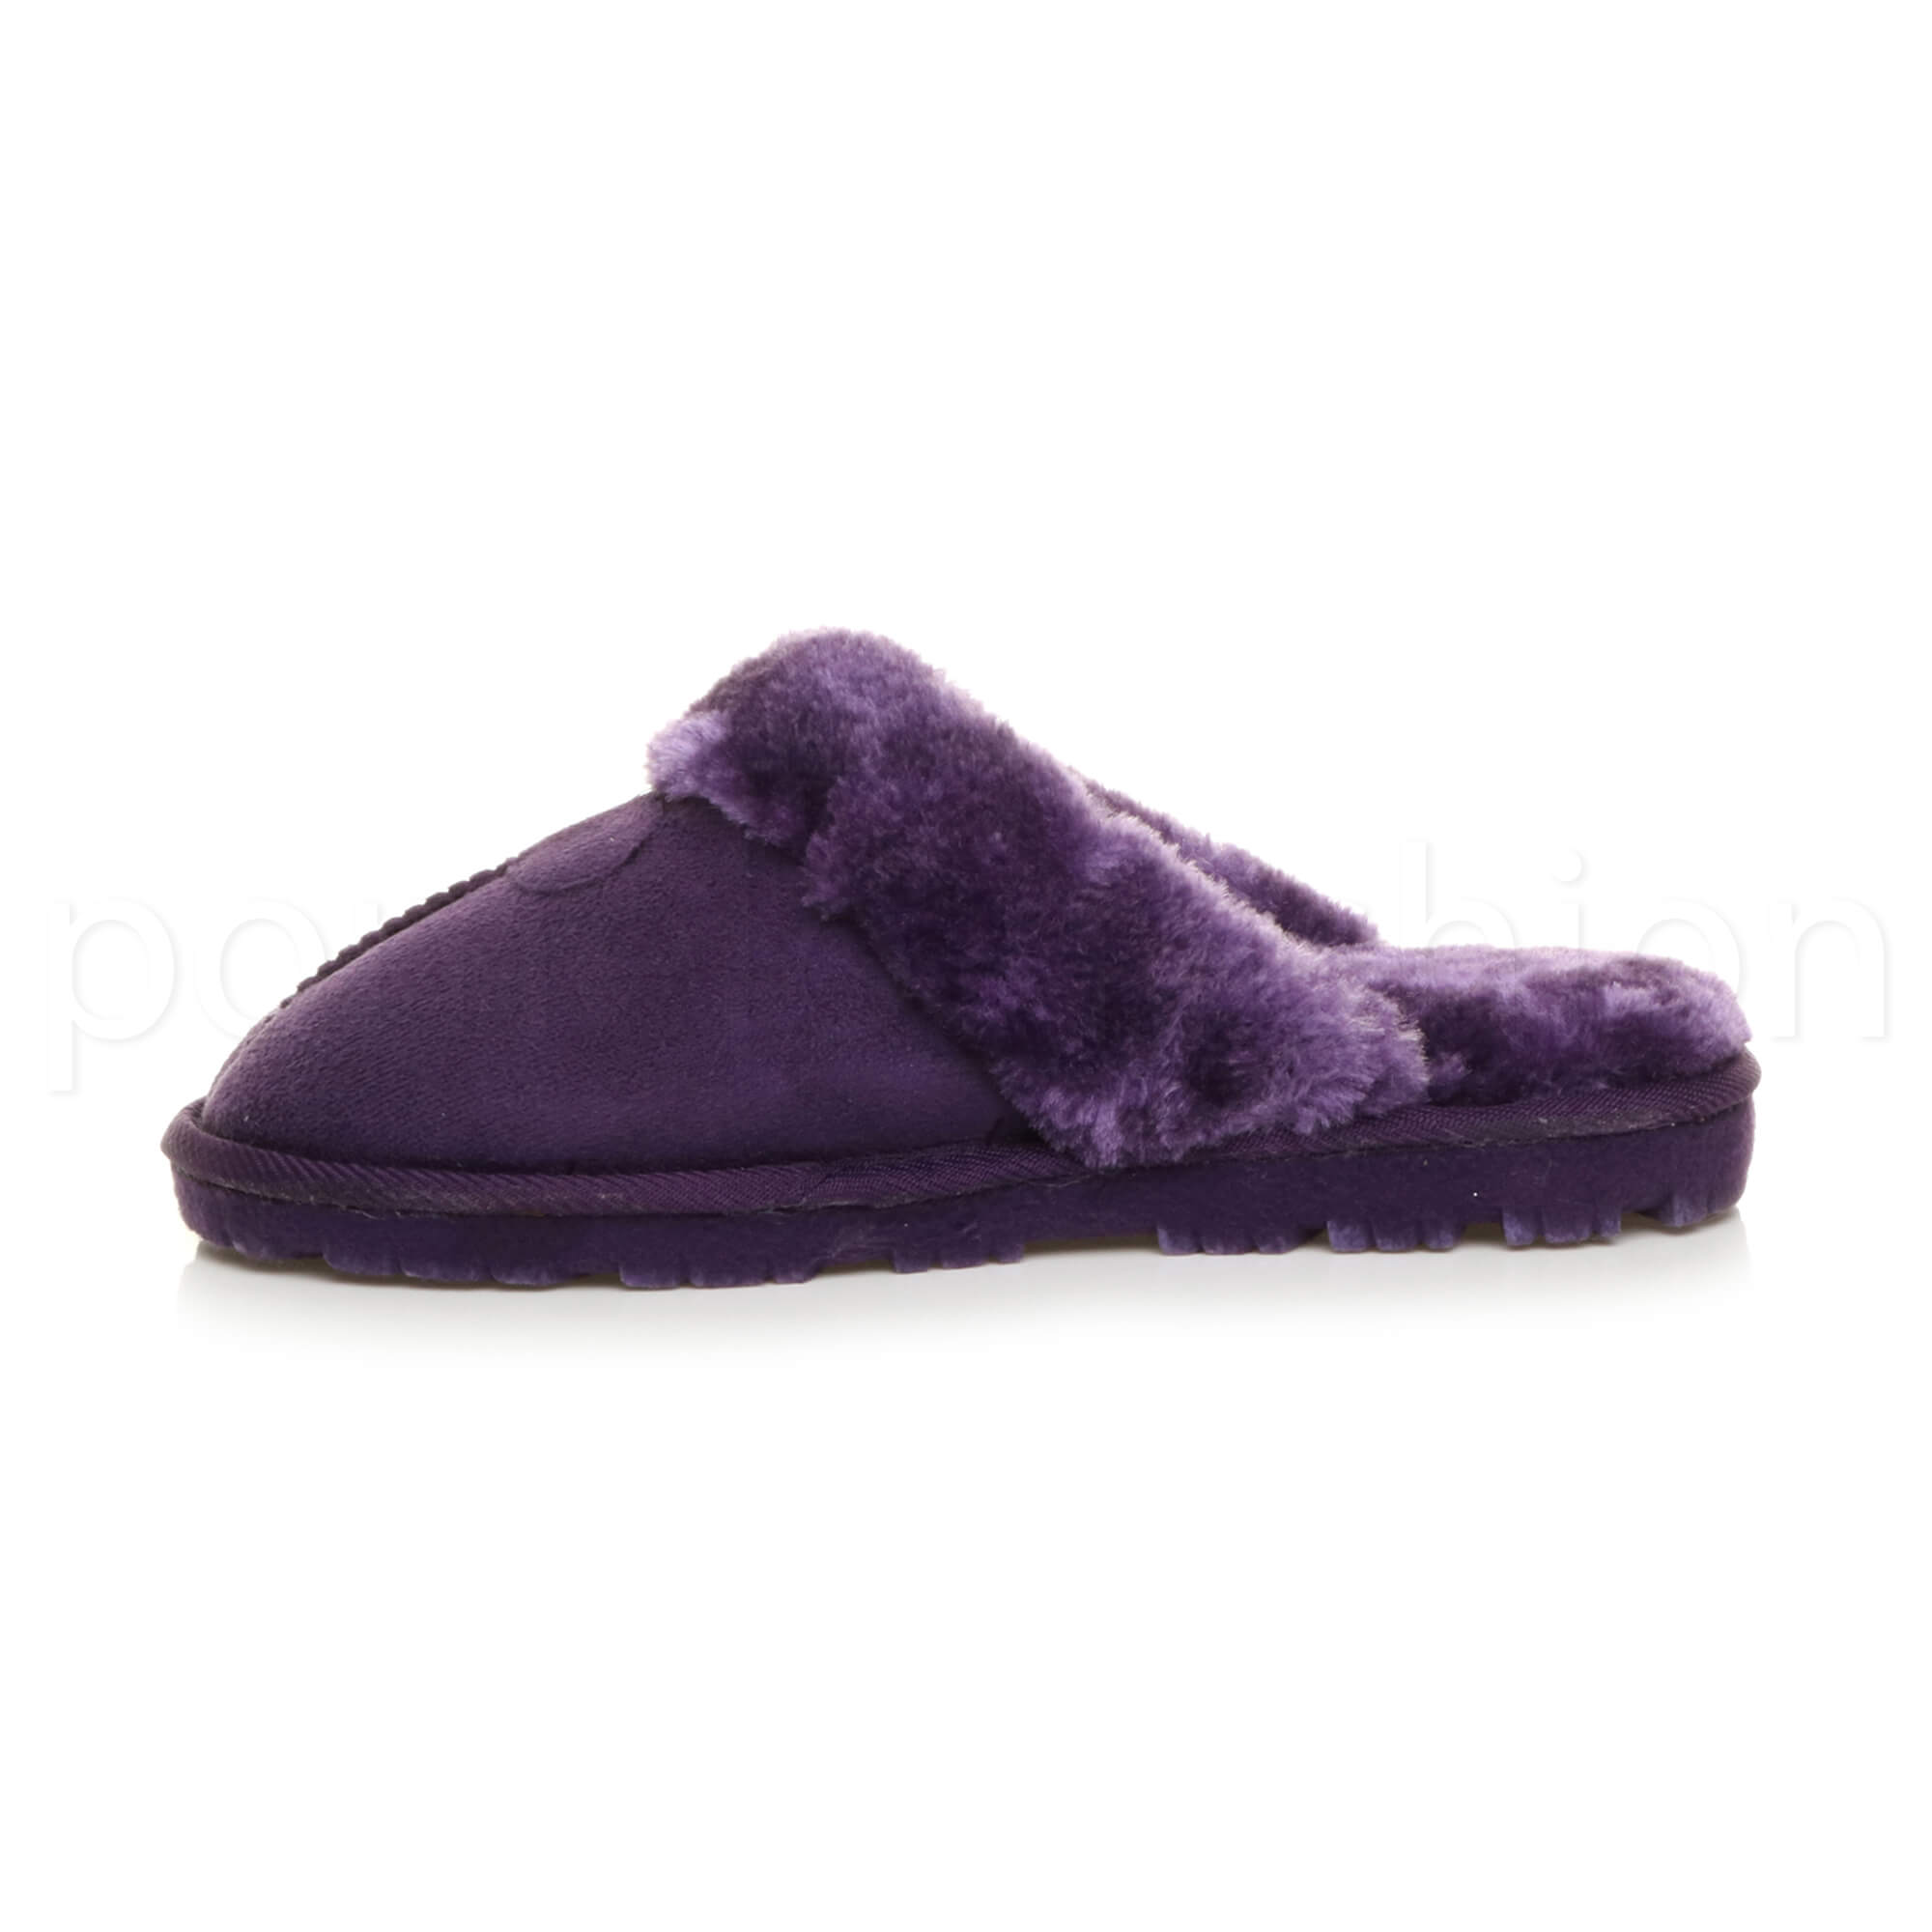 WOMENS-LADIES-FLAT-FUR-LINED-COMFORTABLE-WINTER-MULES-SLIPPERS-HOUSE-SHOES-SIZE thumbnail 88